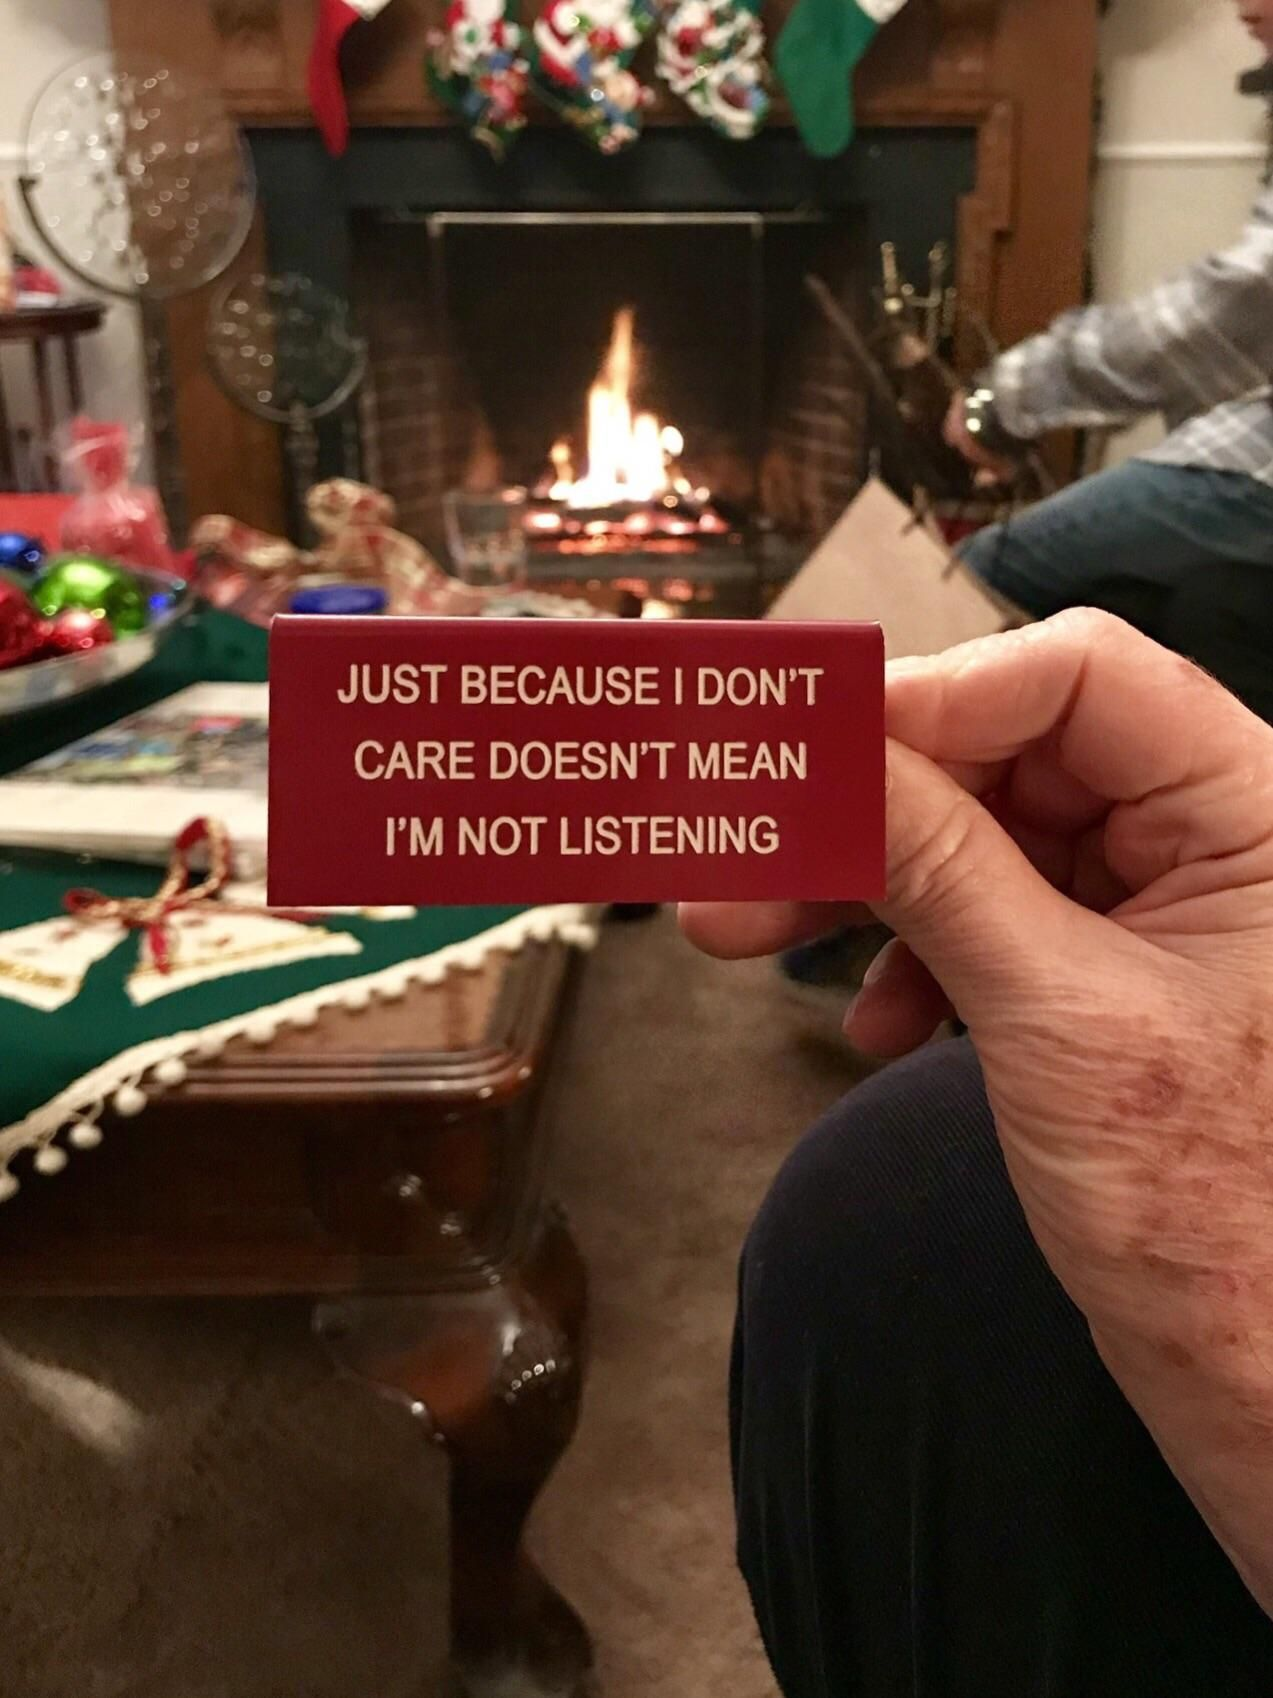 Extremely appropriate Xmas gift my grandfather received